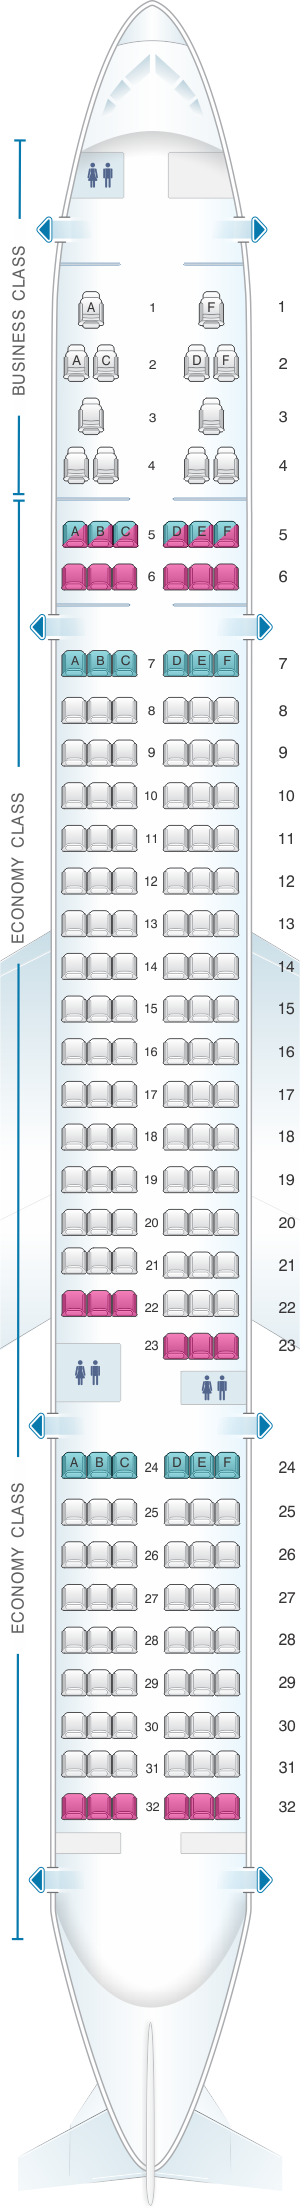 Seat map for Aer Lingus Boeing B757 200